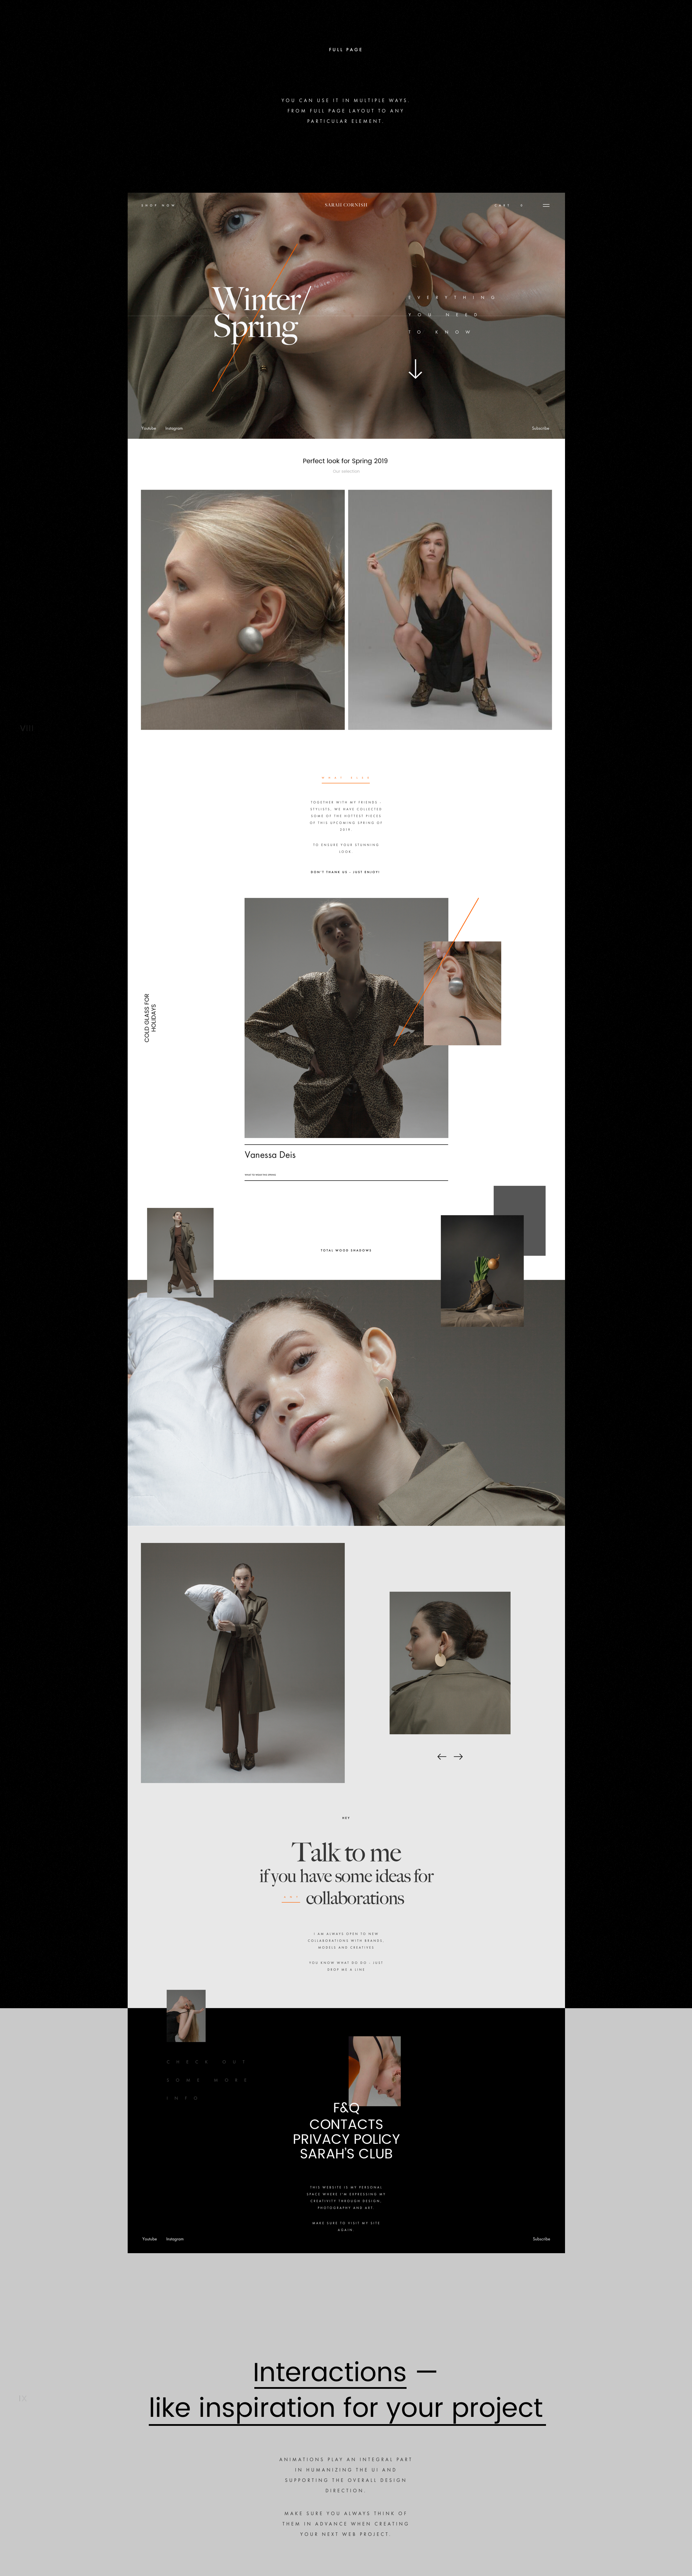 Fashion Influencer UI Kit - The UI Kit itself is #MadeInAdobeXD and is available for free. It features a ton of goodies for you to use in your next design projects! Don't miss out!